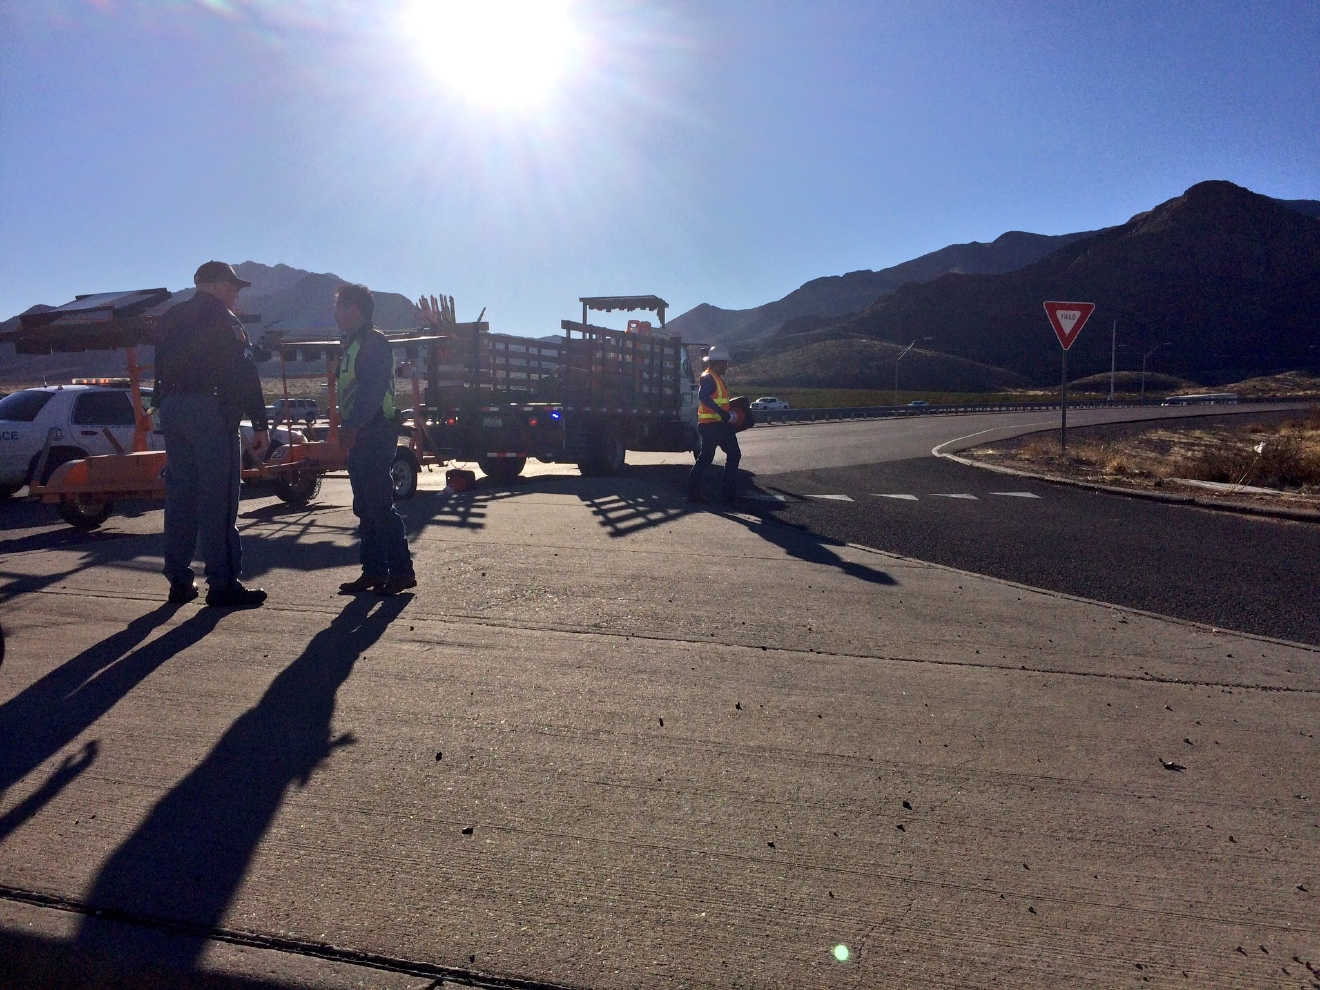 Two people were injured in a crash on Transmountain Road on Feb. 16, 2017. Credit: KFOX14 / CBS4